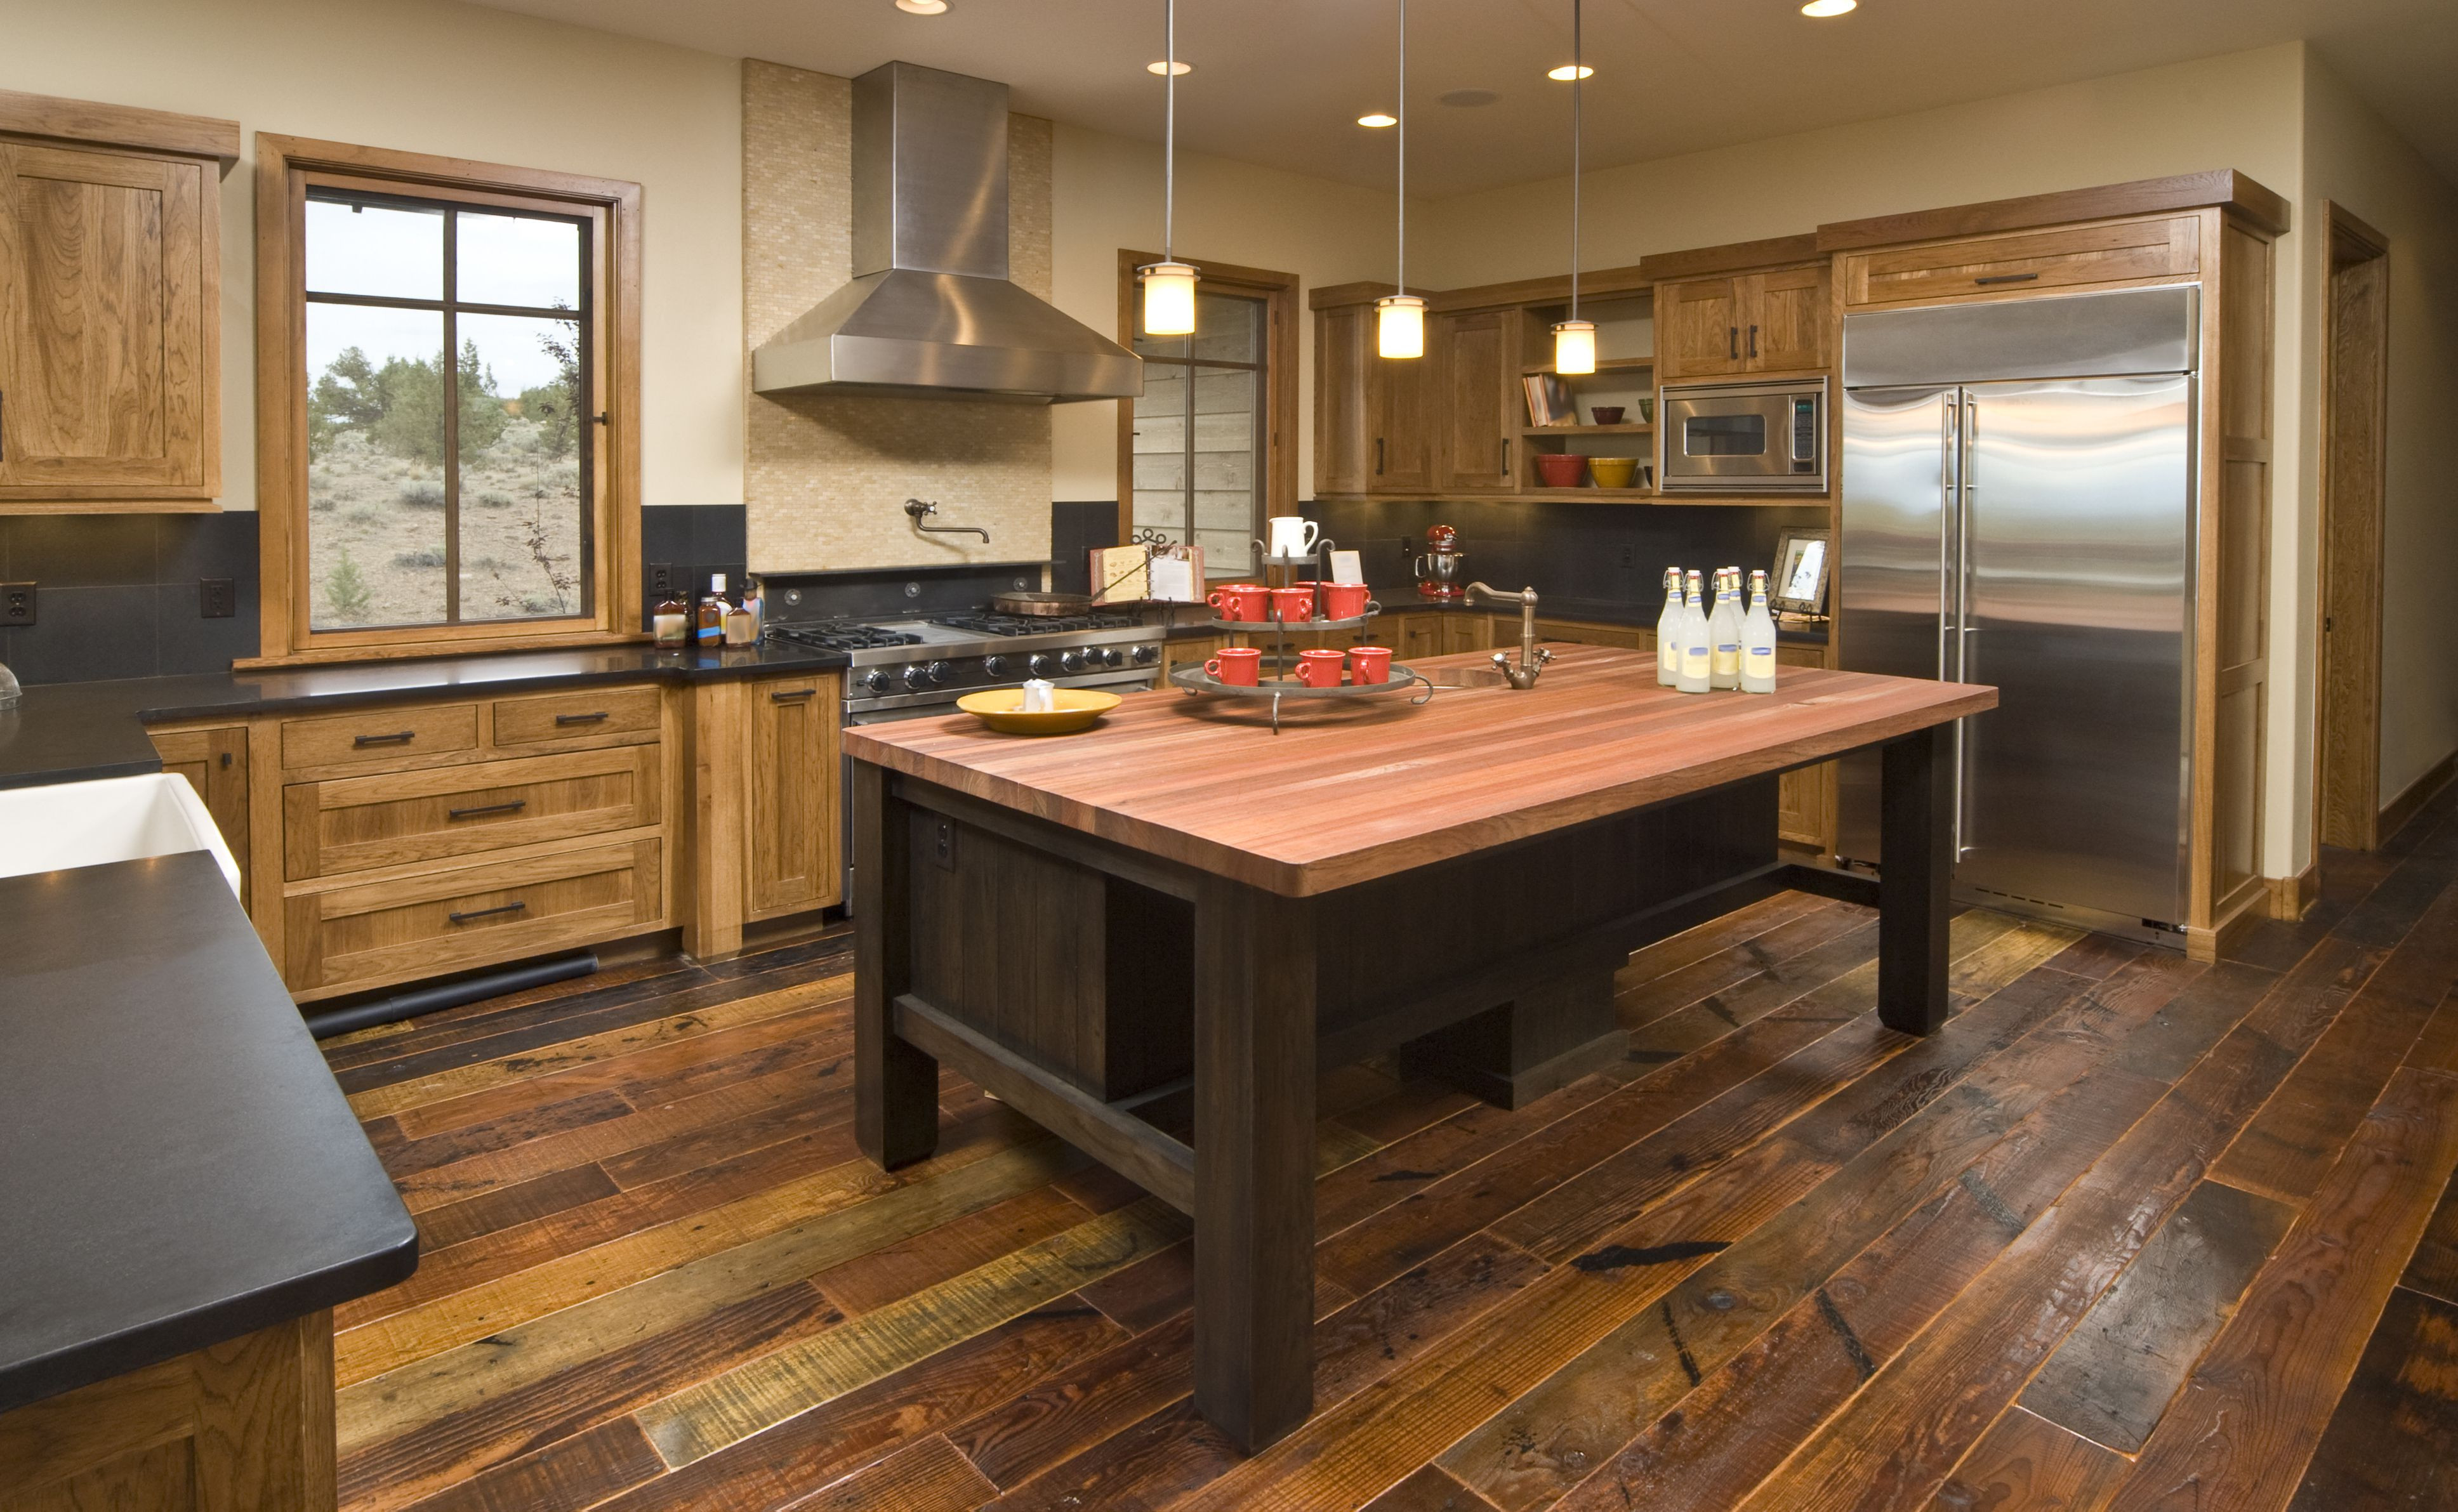 hardwood flooring installation kansas city of where to buy reclaimed wood flooring with rustic modern kitchen 157565456 58ae76a73df78c345ba2f5d1